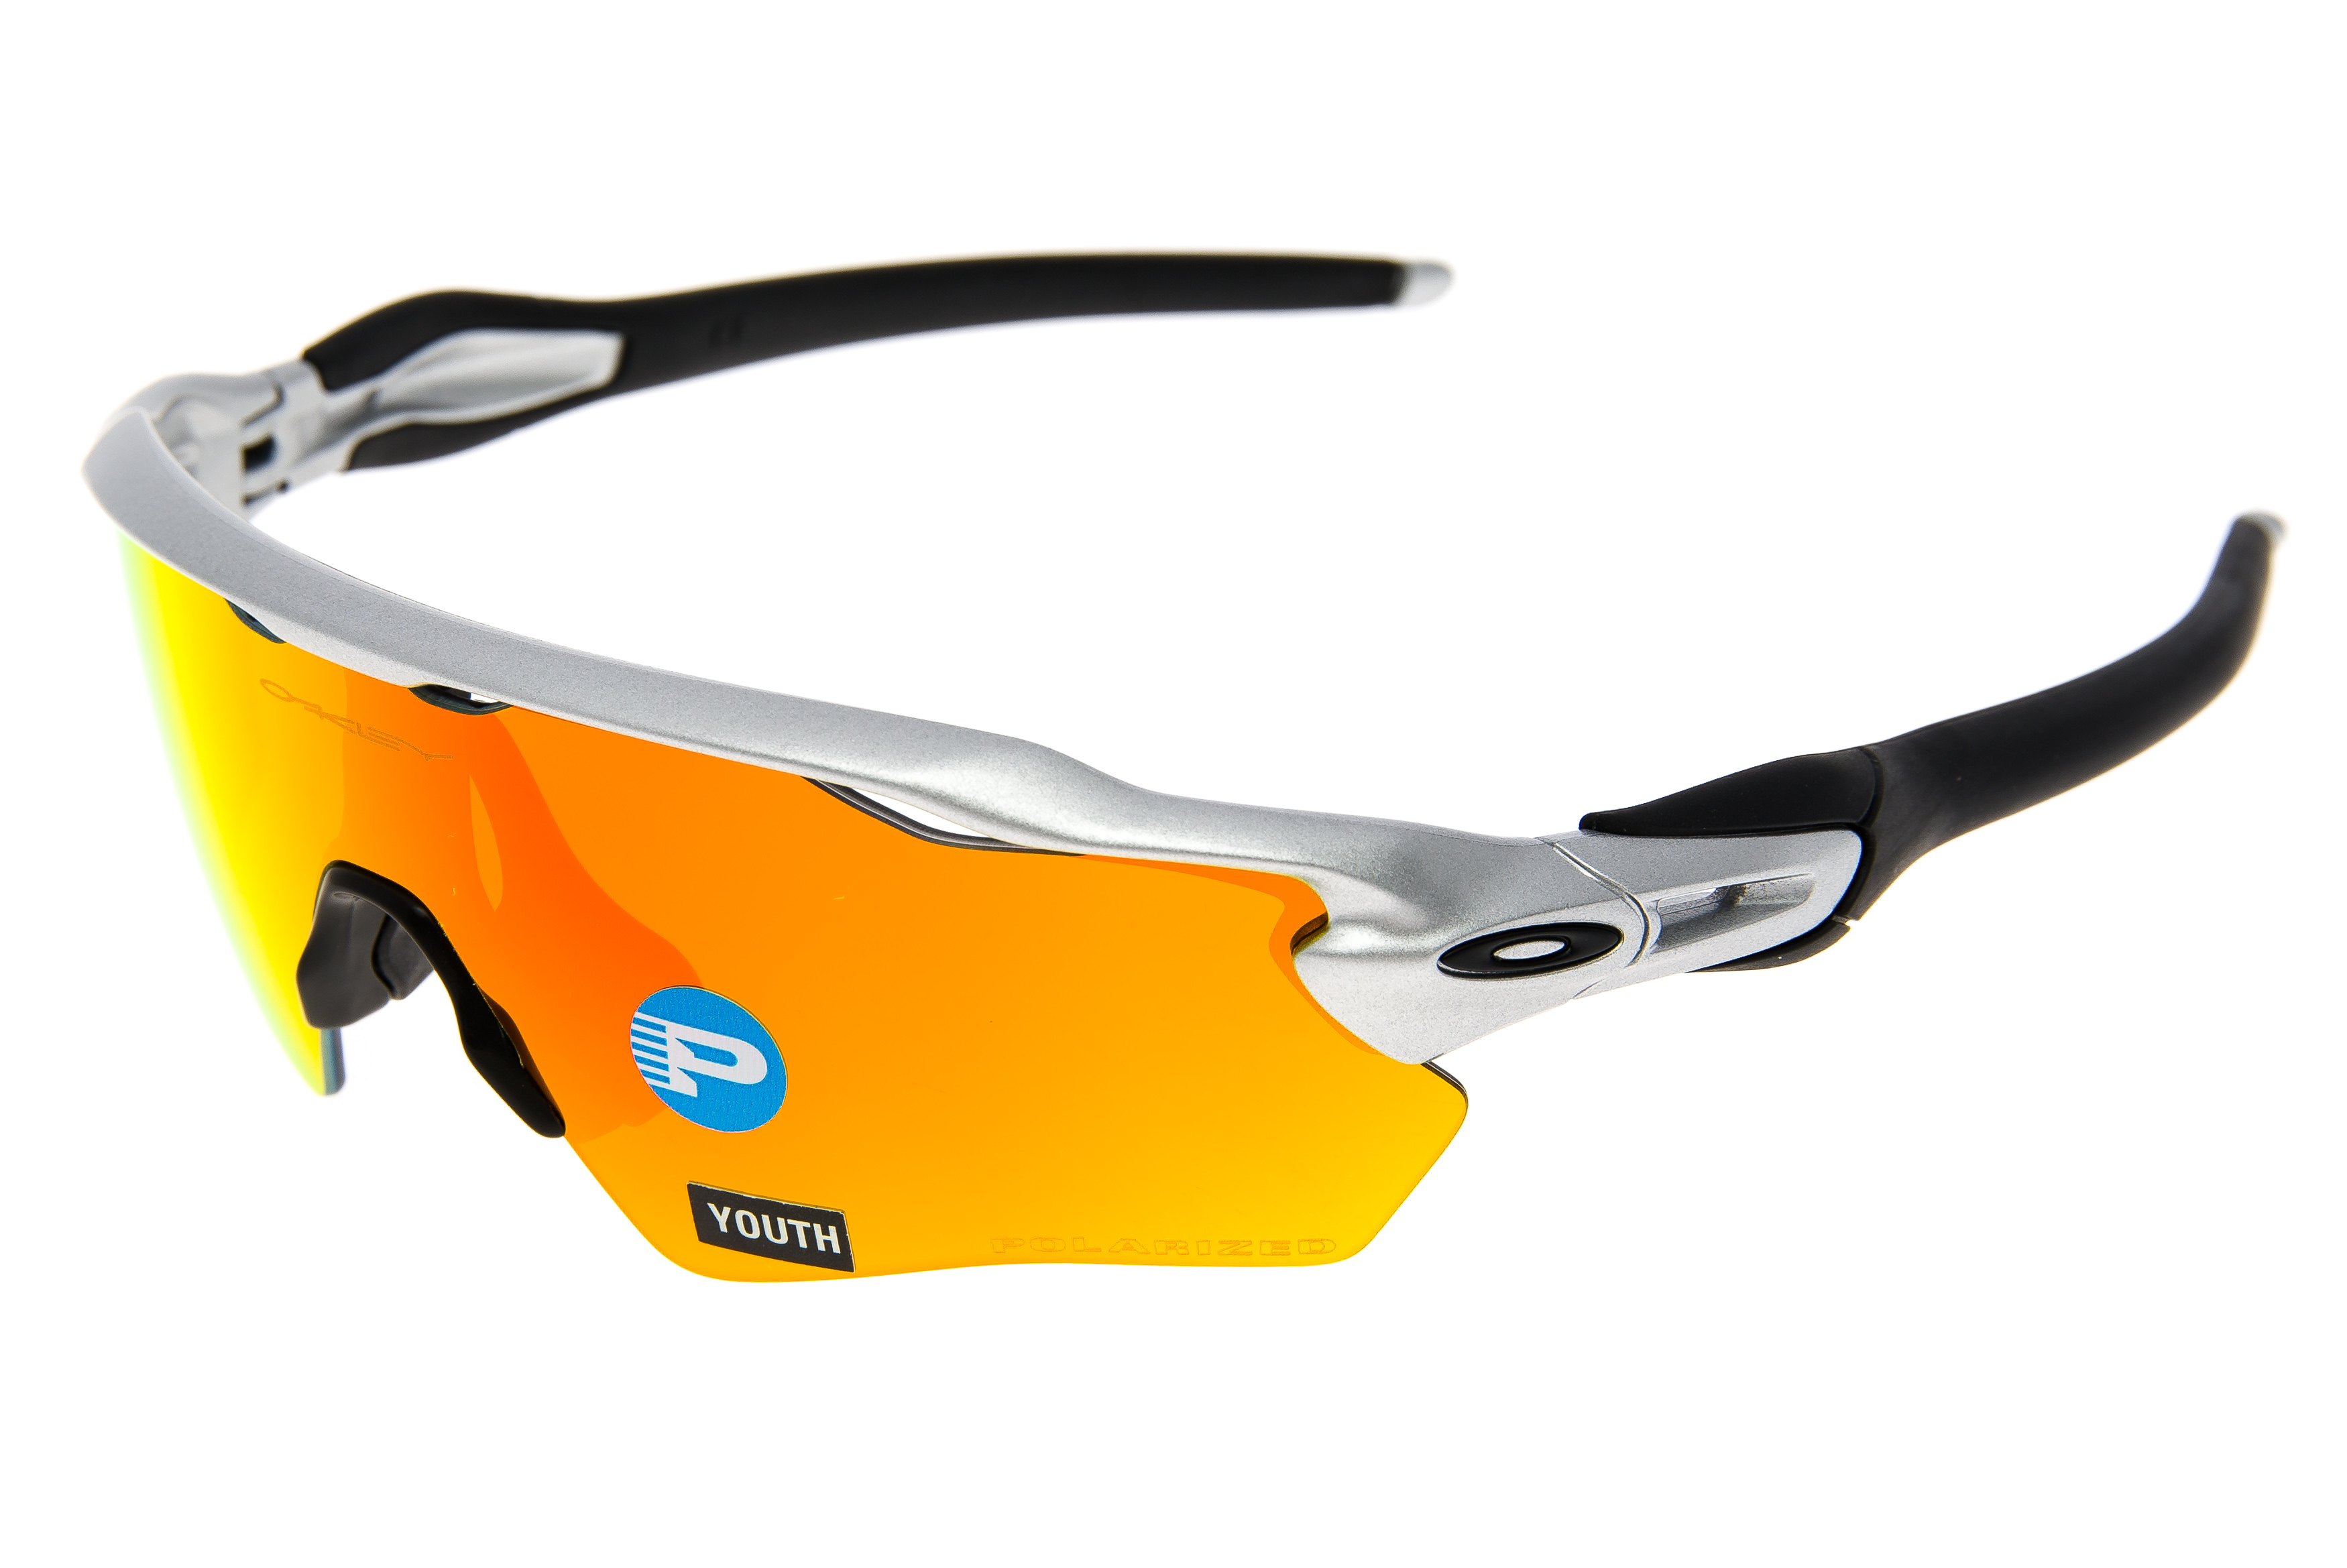 d22d6446fd2 Details about Oakley Radar EV XS Path Youth Sunglasses Silver Frame  Polarized Lens - Excellent